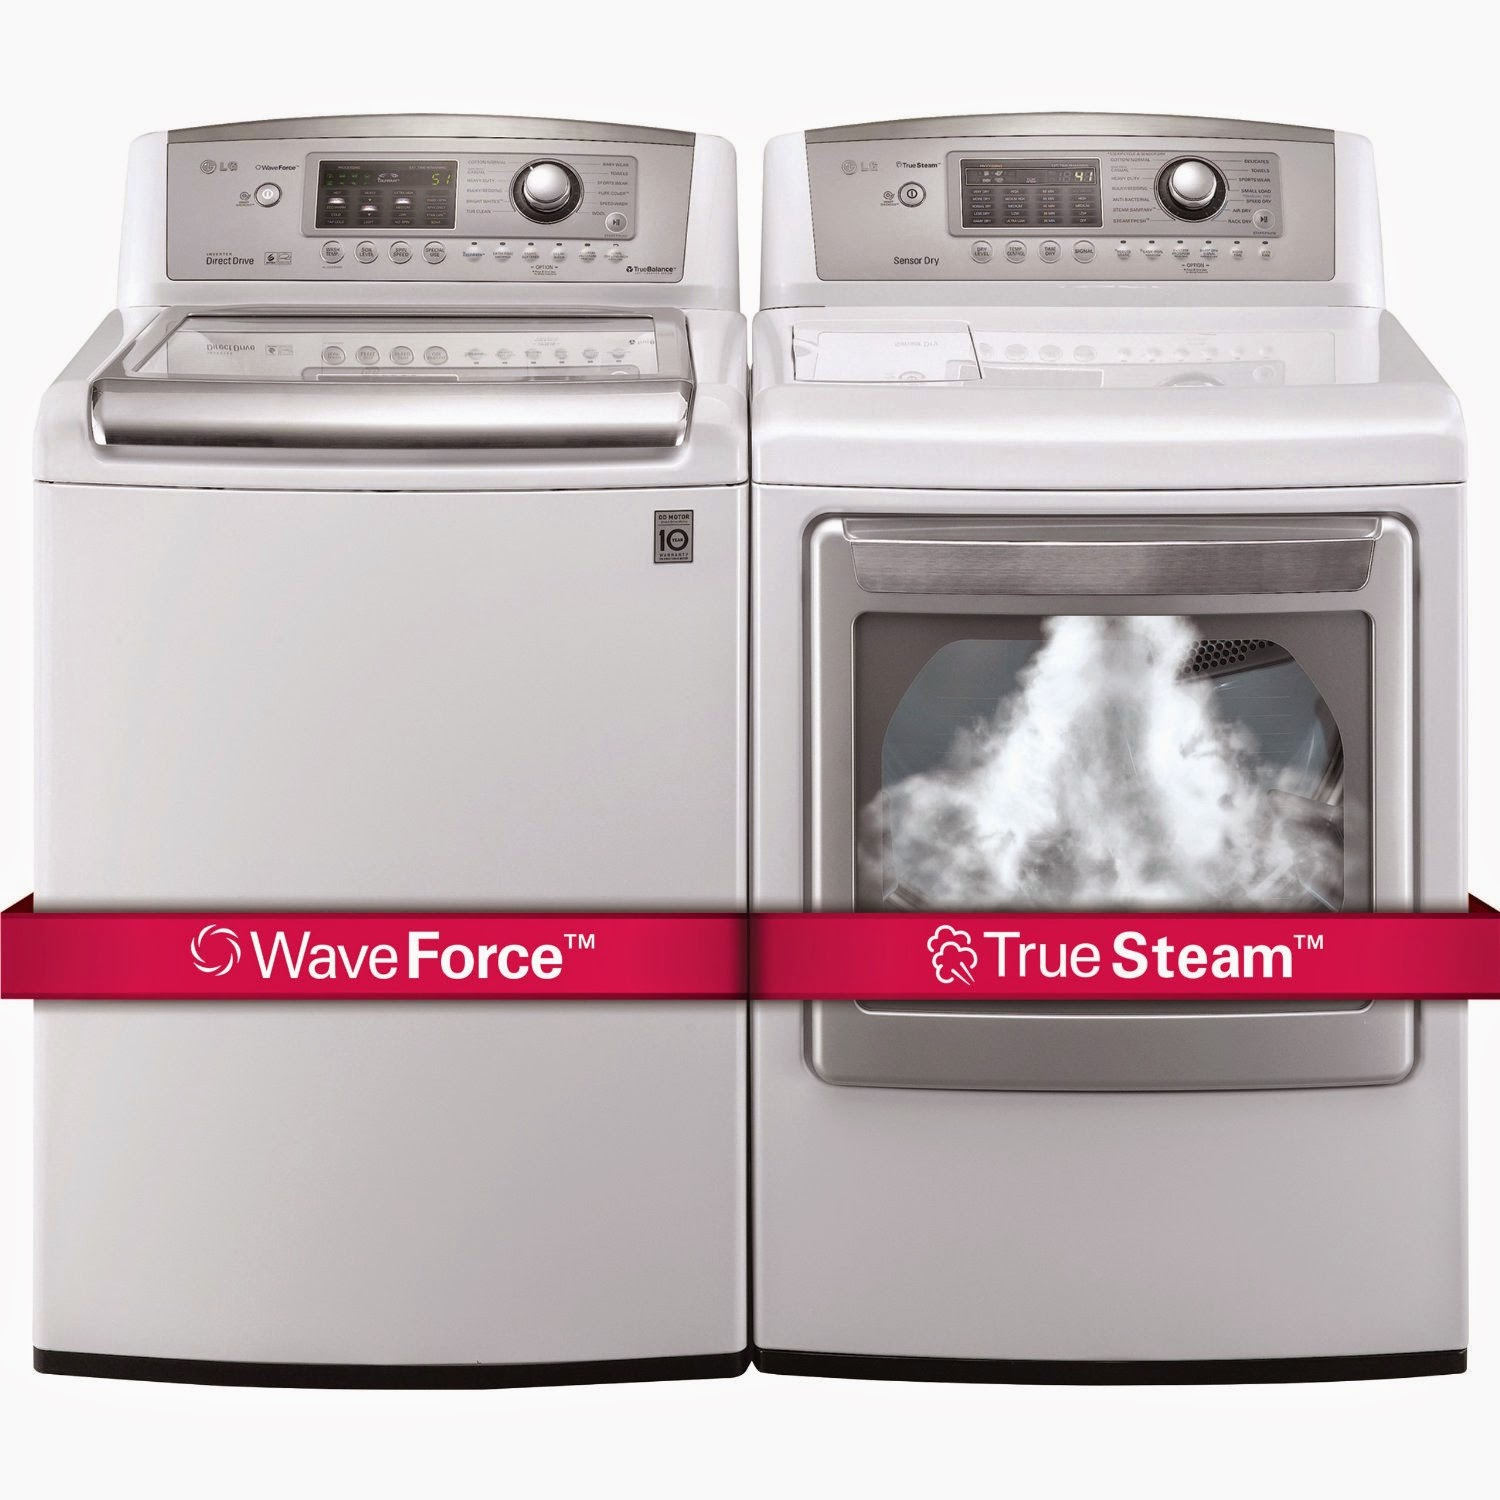 lg ultra large capacity top load laundry pair with waveforce technology washer